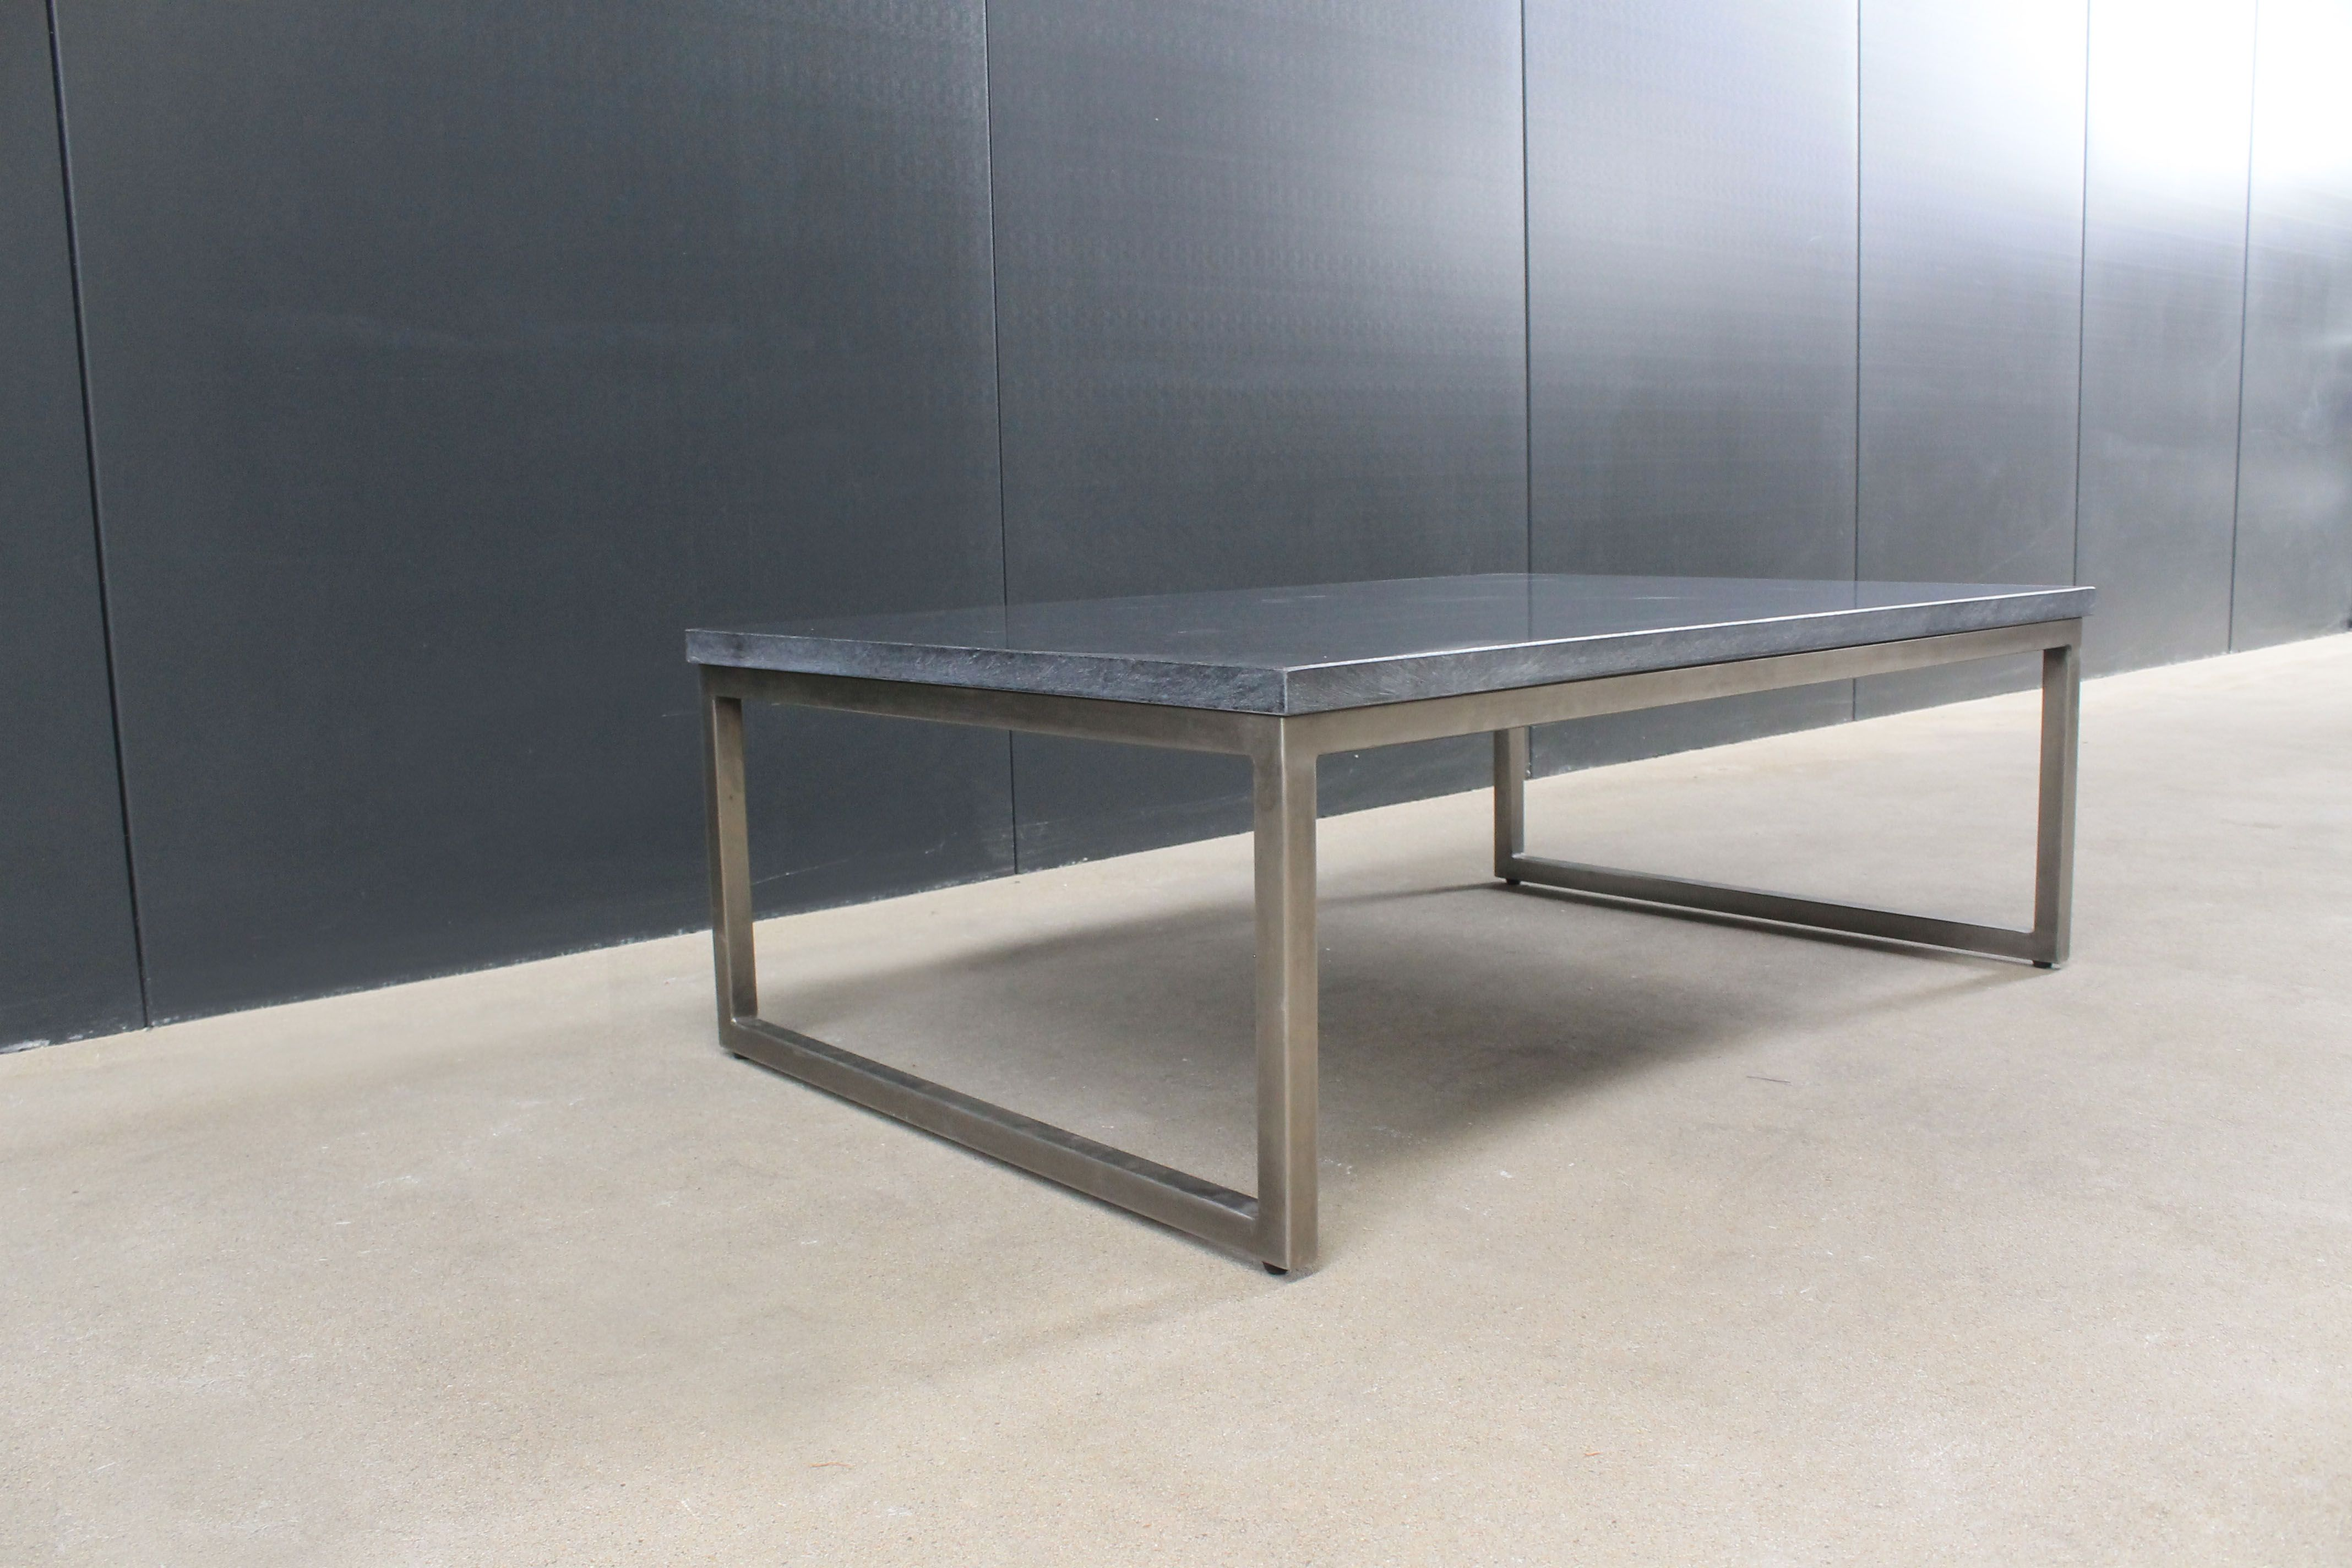 Table steel with basalt tabletop 120x80cm